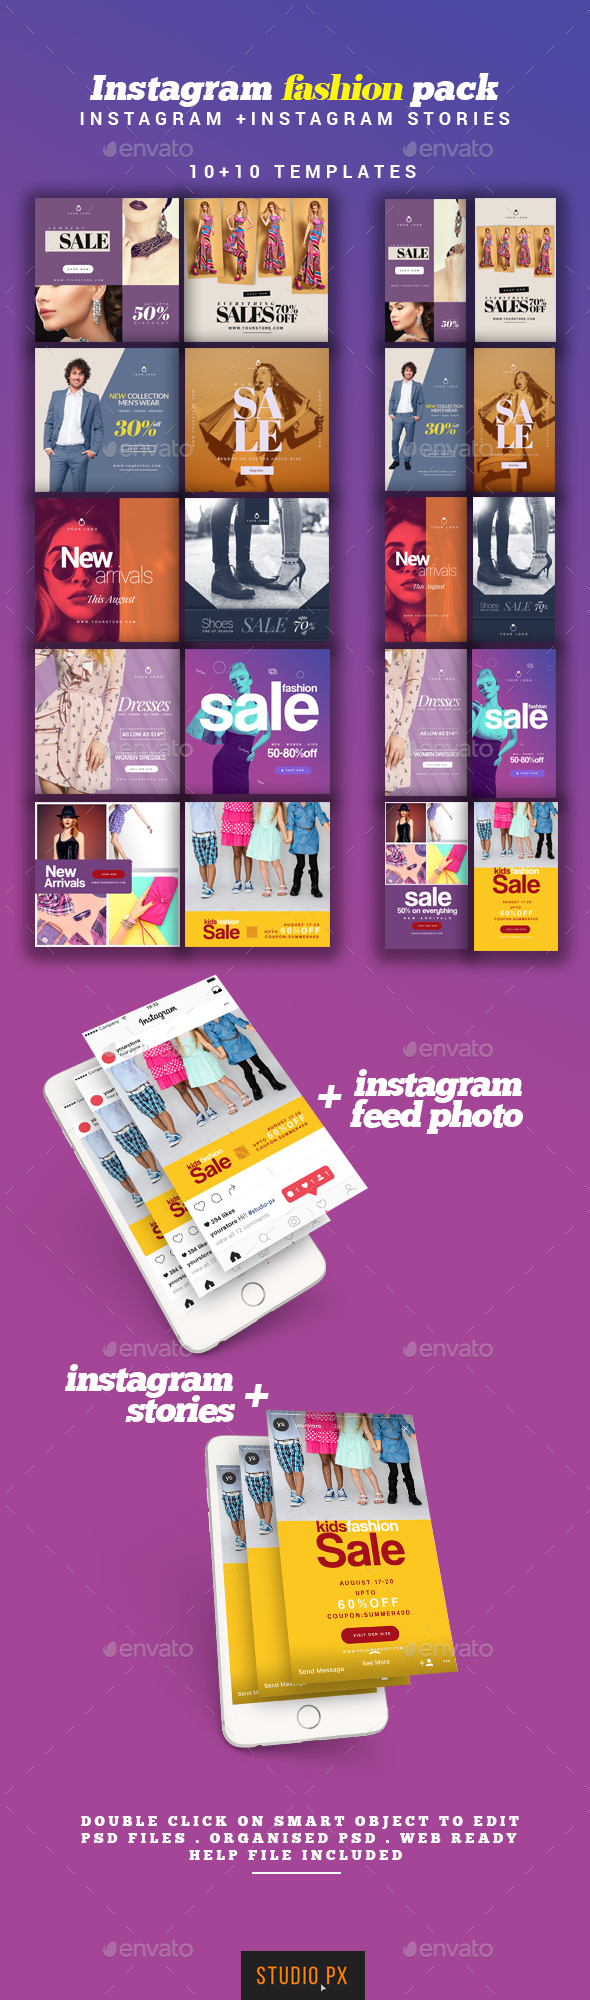 Instagram Fashion Pack Template - Miscellaneous Social Media